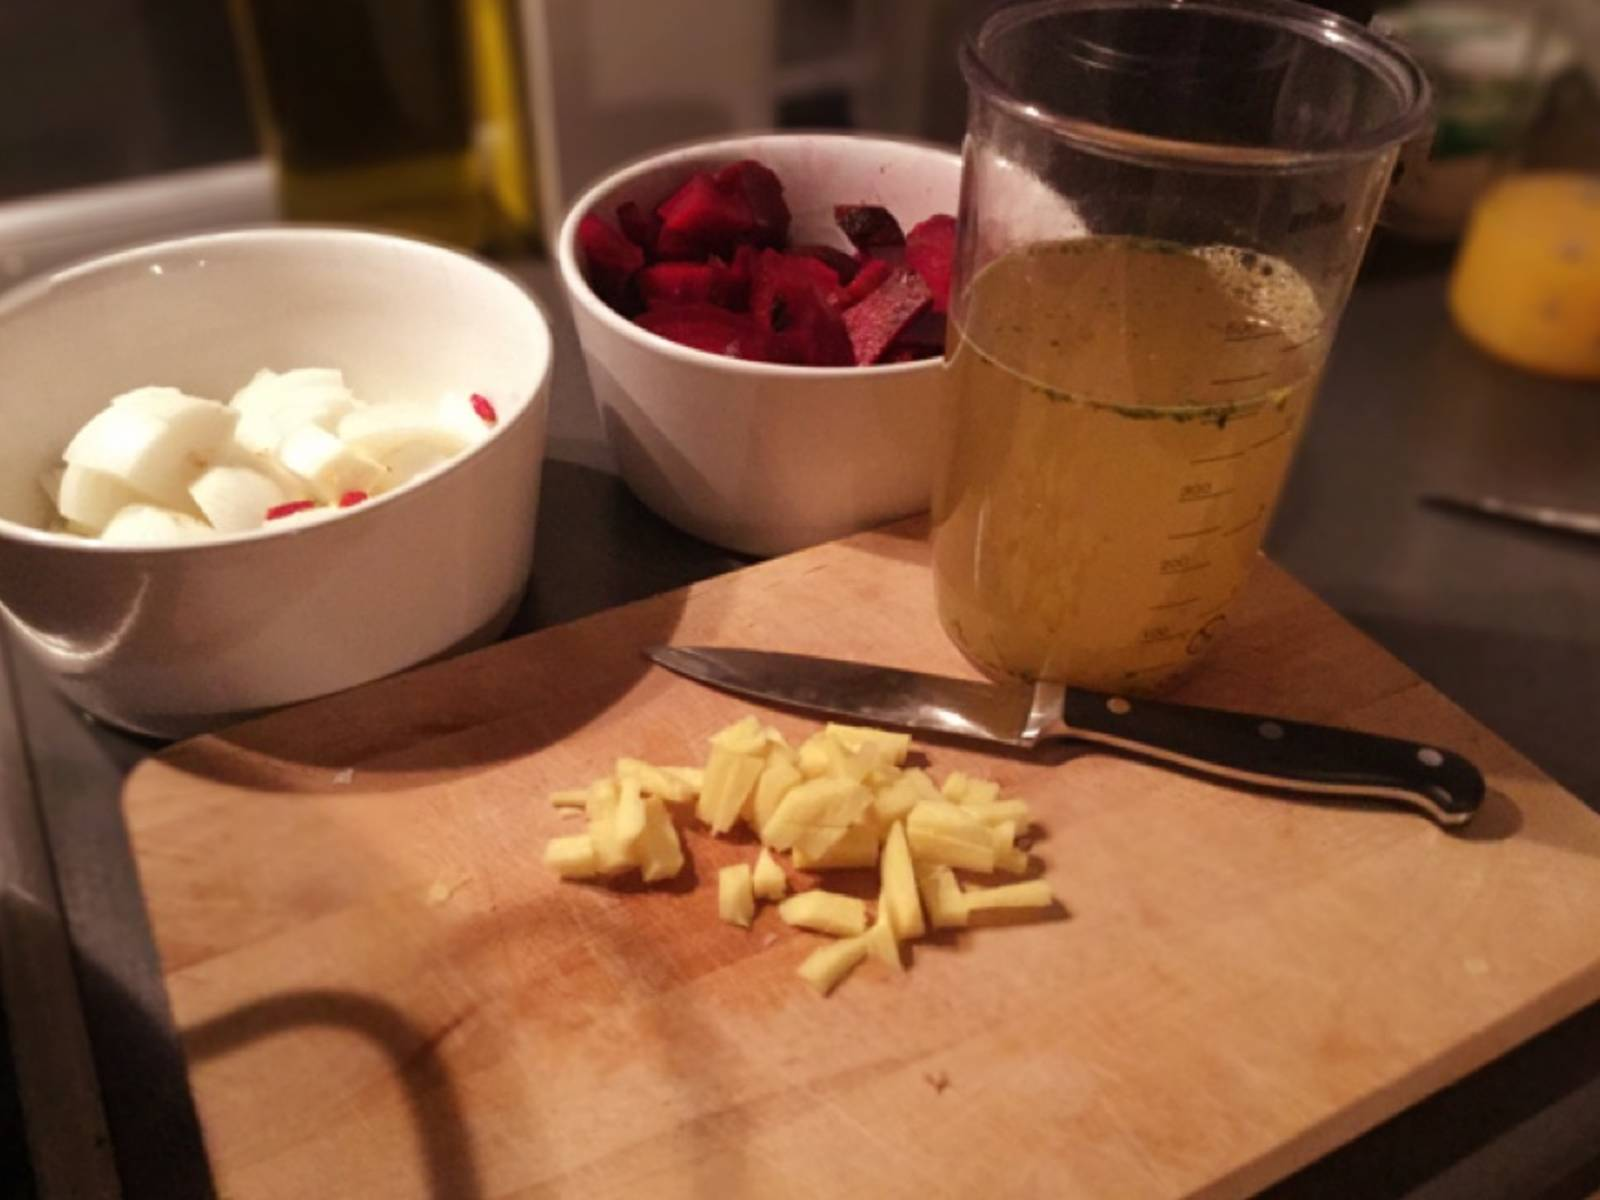 Peel and chop onions and beets. Finely dice ginger (or grate). Prepare vegetable stock and put all ingredients aside.